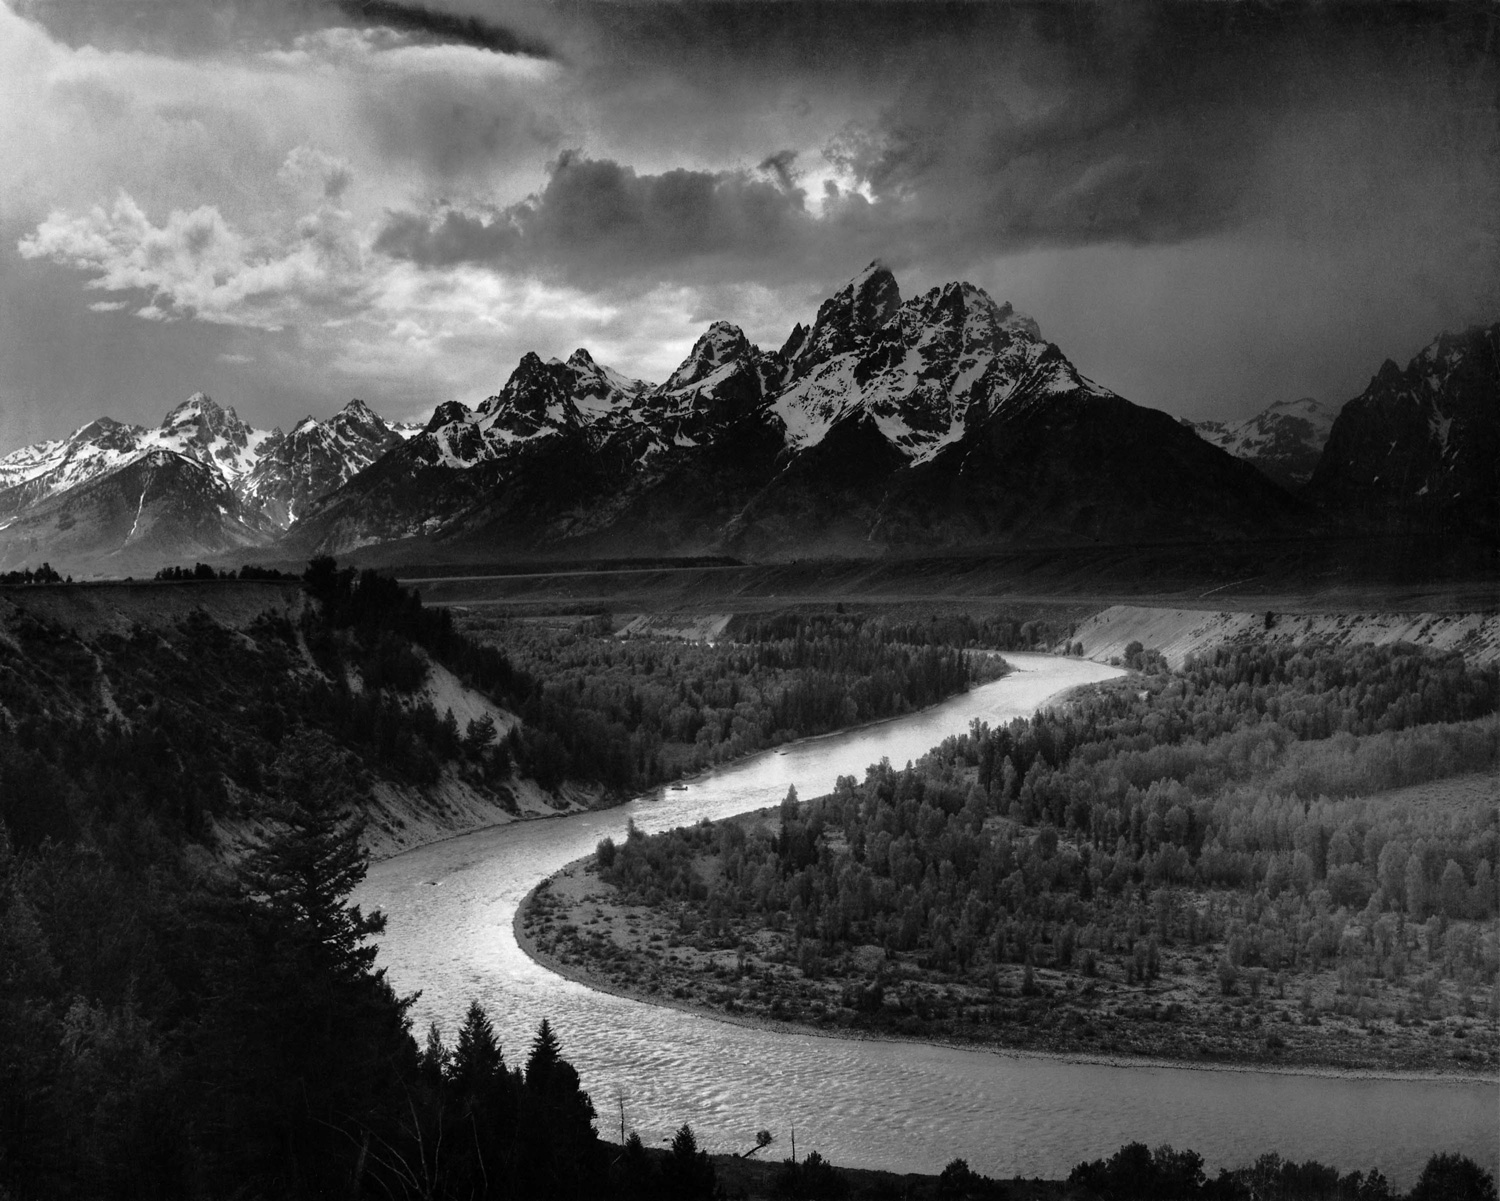 Image: Ansel Adams used red filters to enhance the contrast of the sky in his photographs. Photo cre...